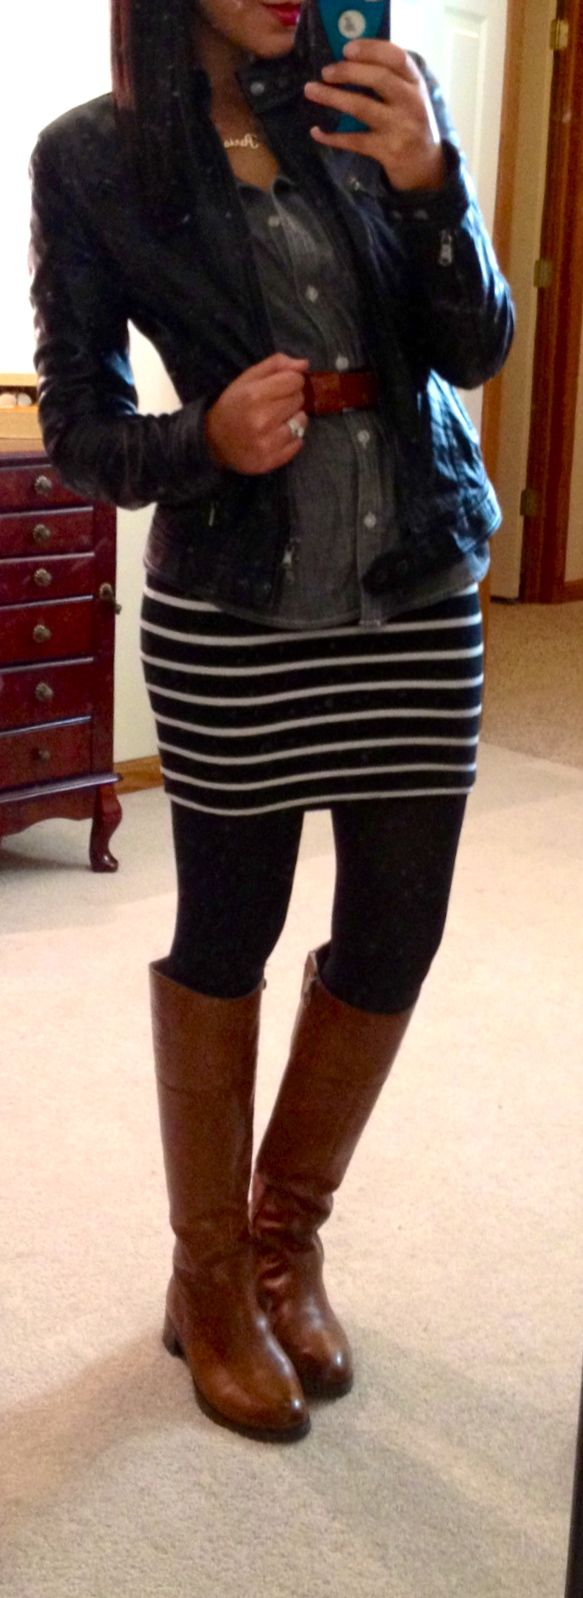 belted chambray shirt over striped dress, leather jacket, tights & riding boots